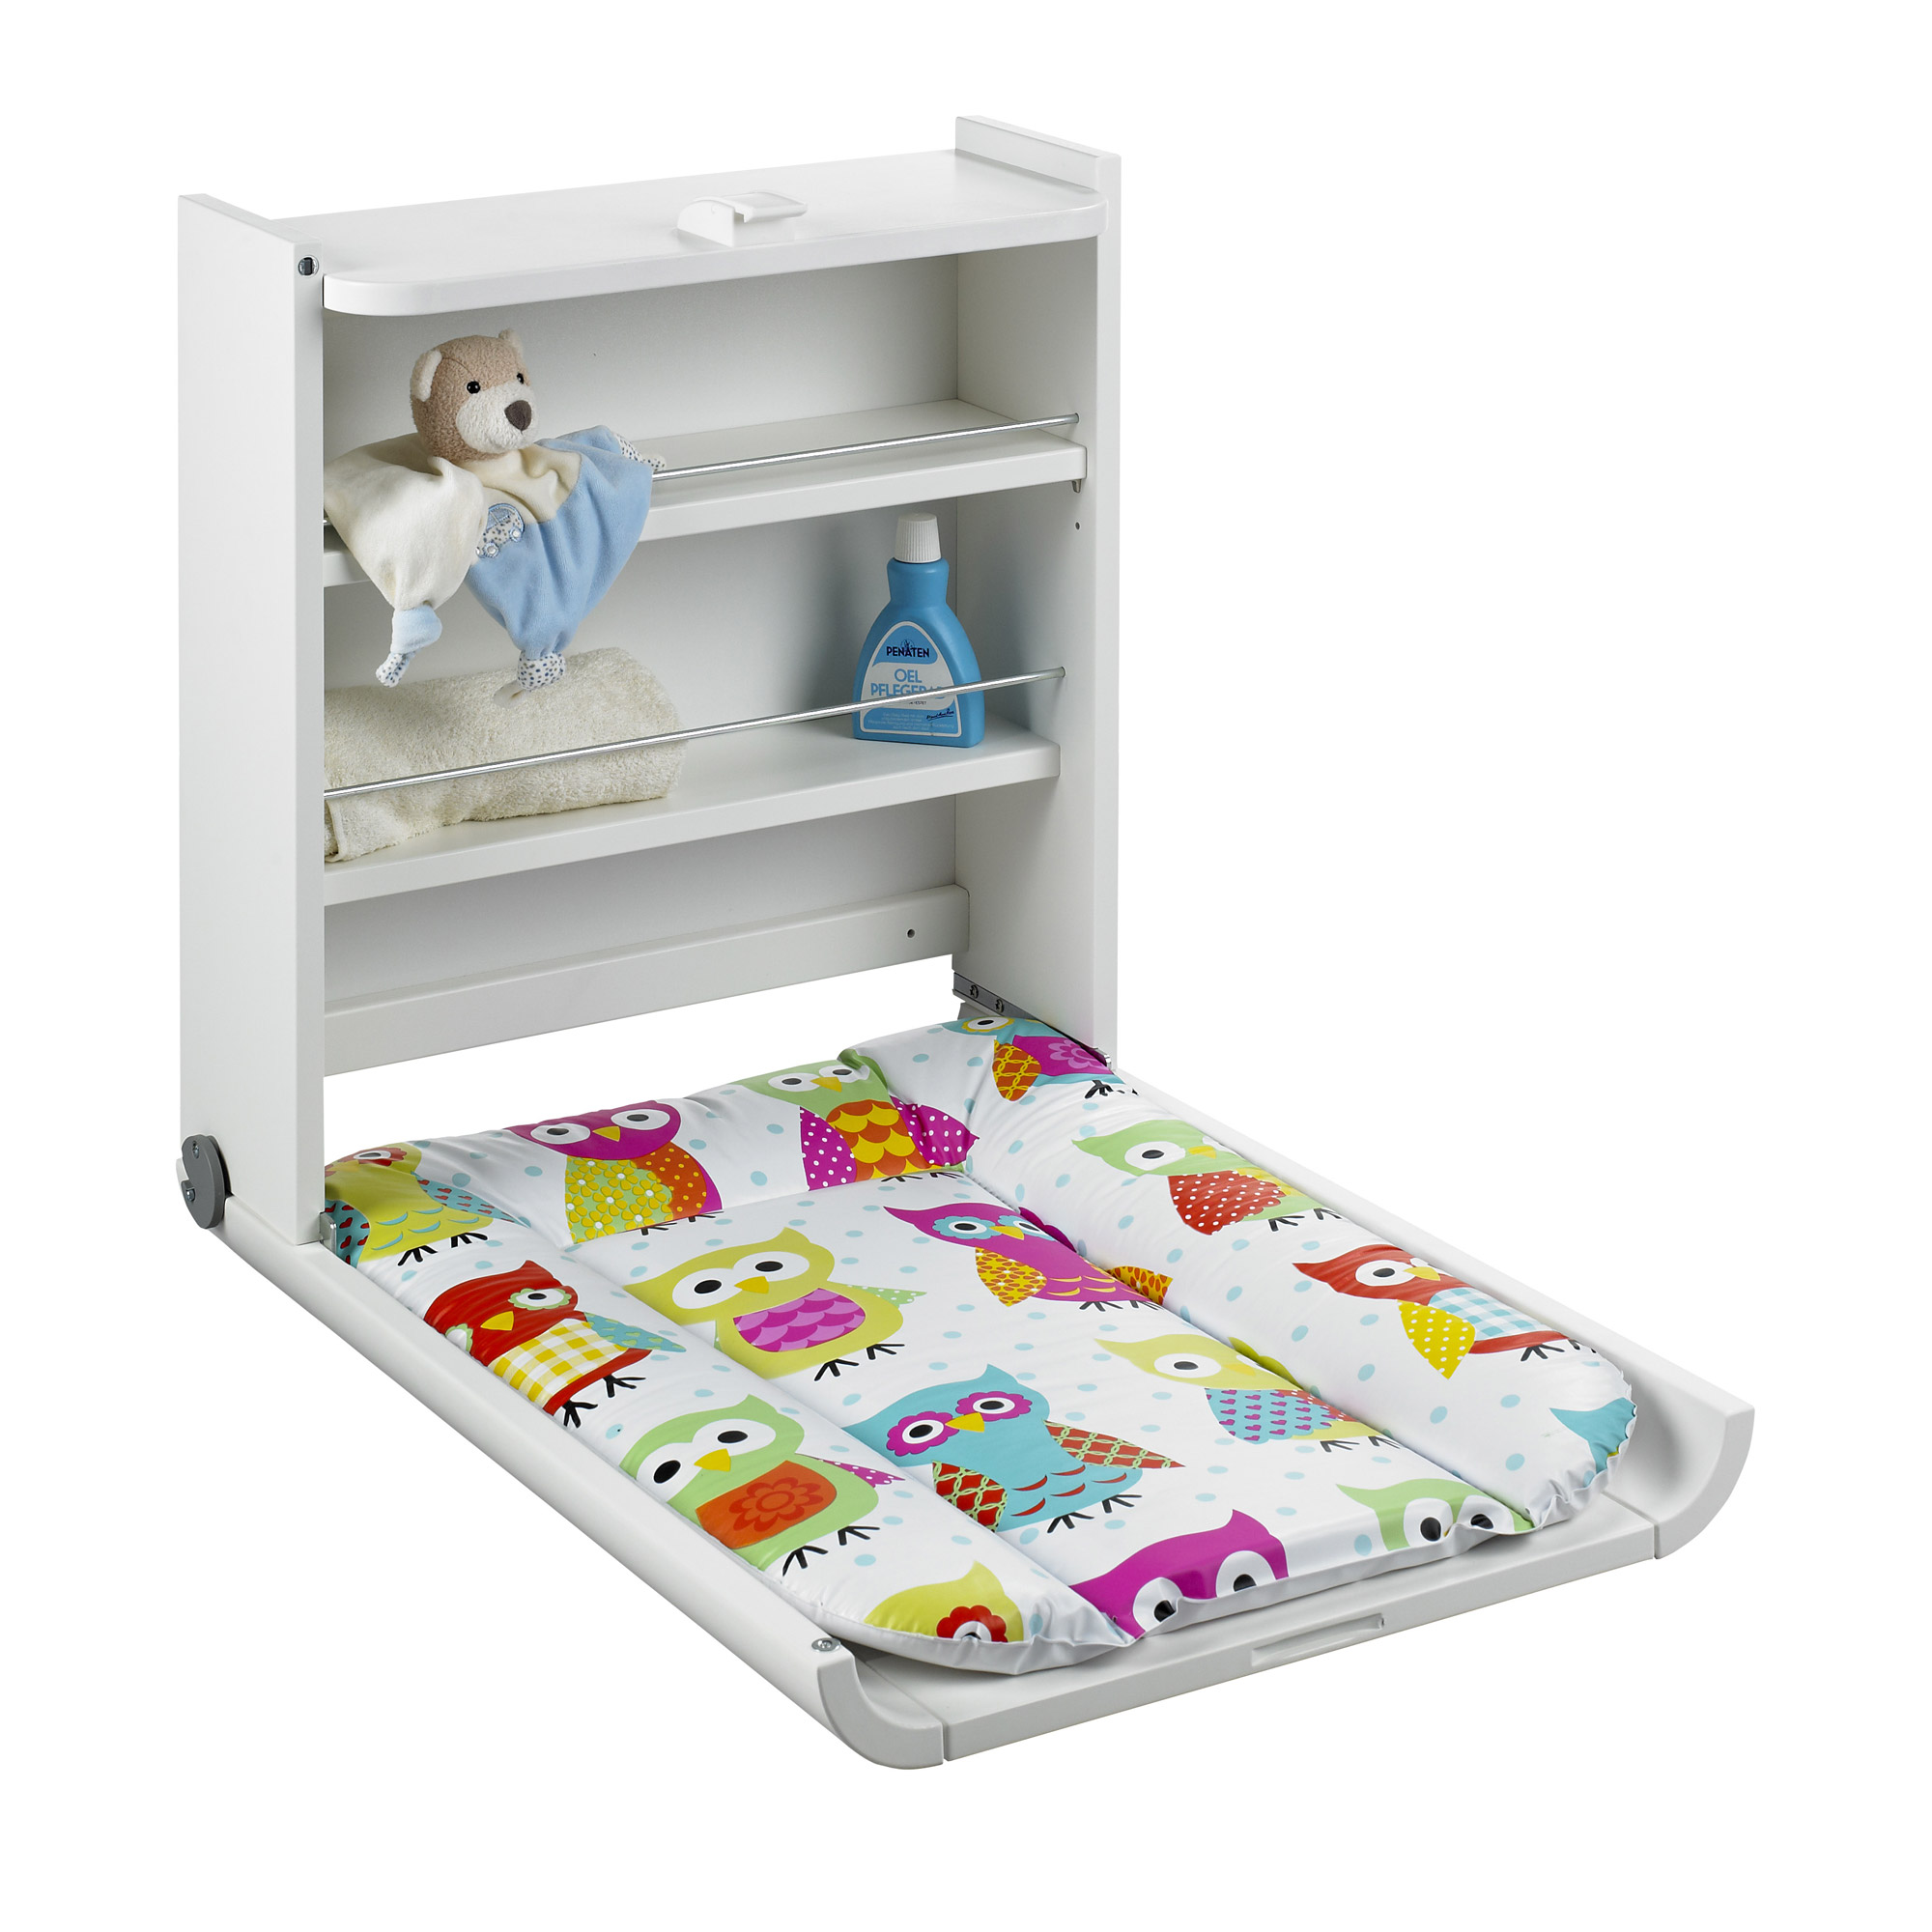 Table langer murale wanda blanc chouette de geuther - Table a langer murale autour de bebe ...